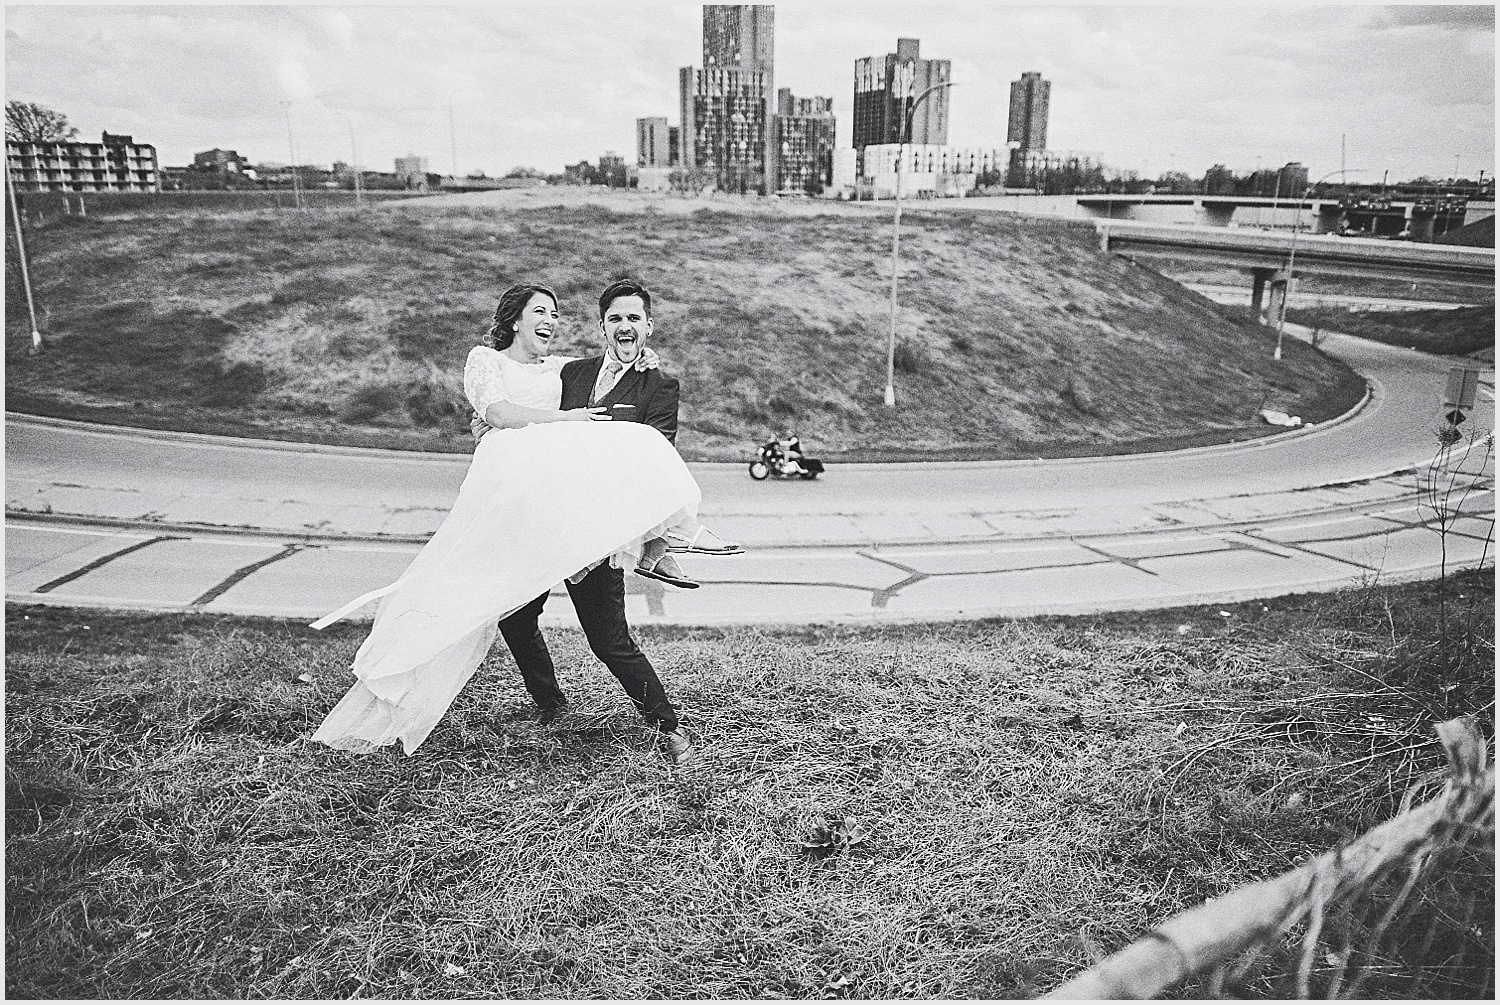 zaspels_Minneapolis_wedding_portraits_lucas_botz_photography_026.jpg